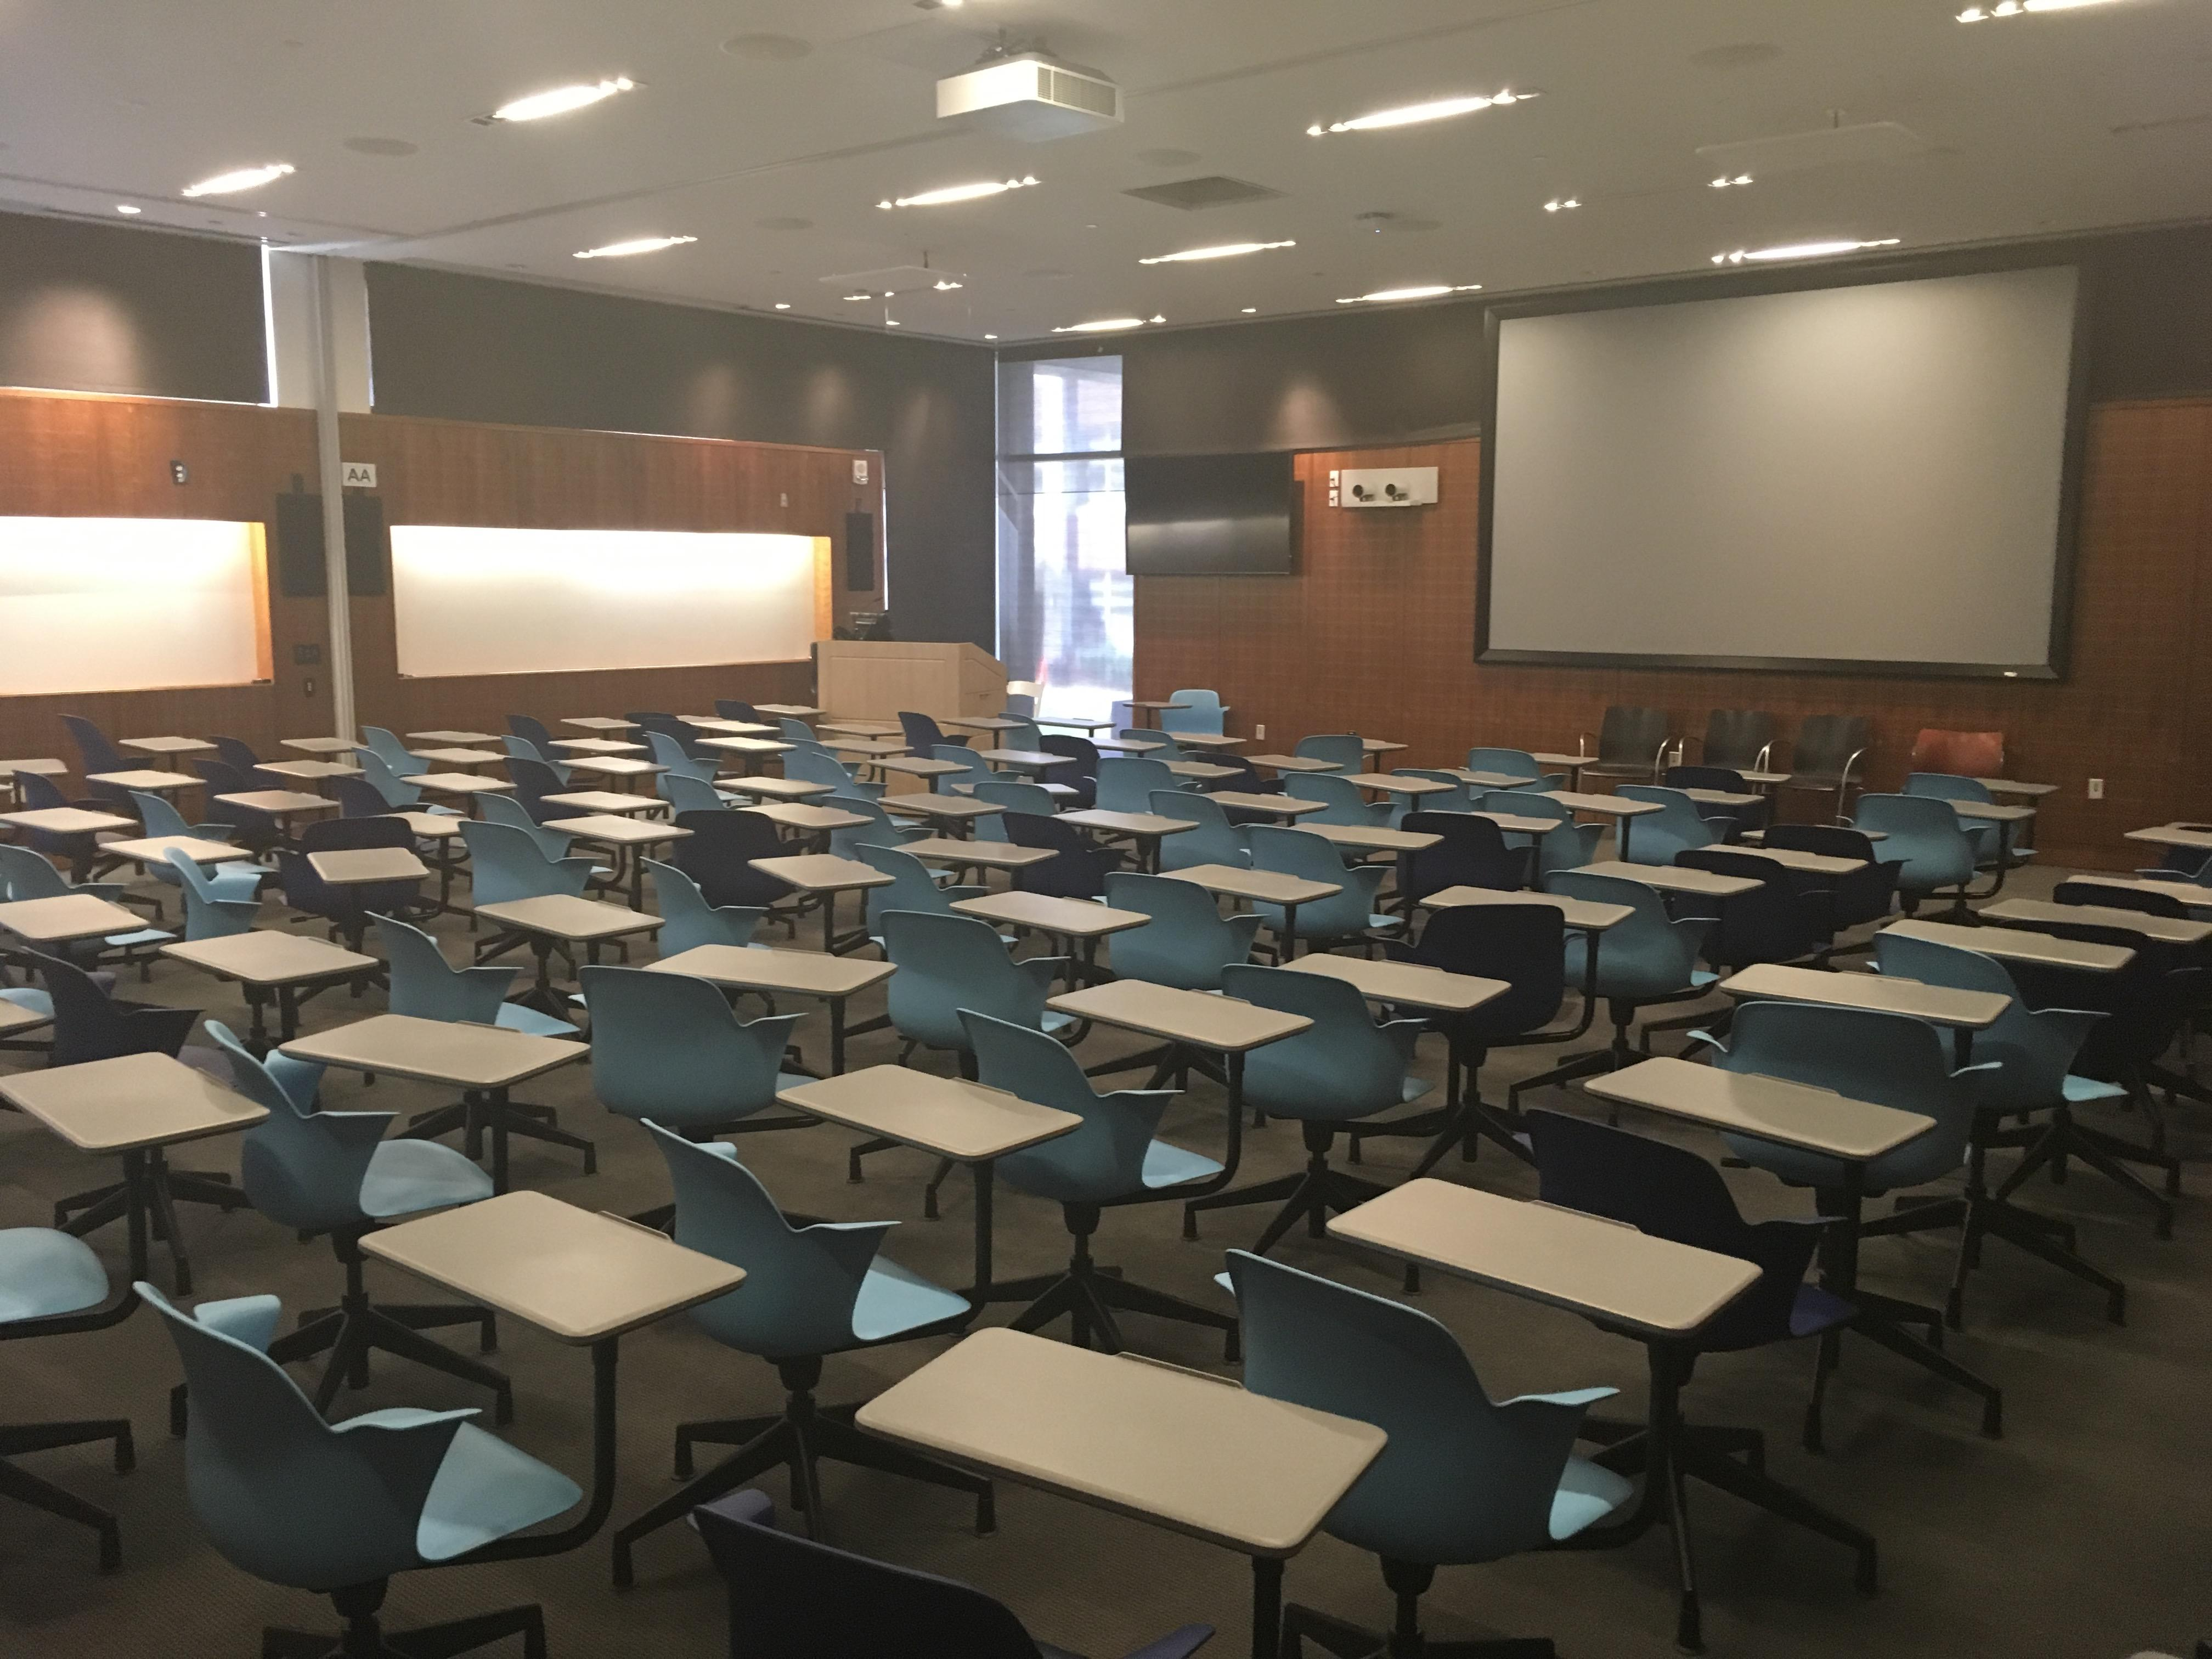 Modern Classroom Projector ~ Pharmacy biology building uconn classrooms storrs